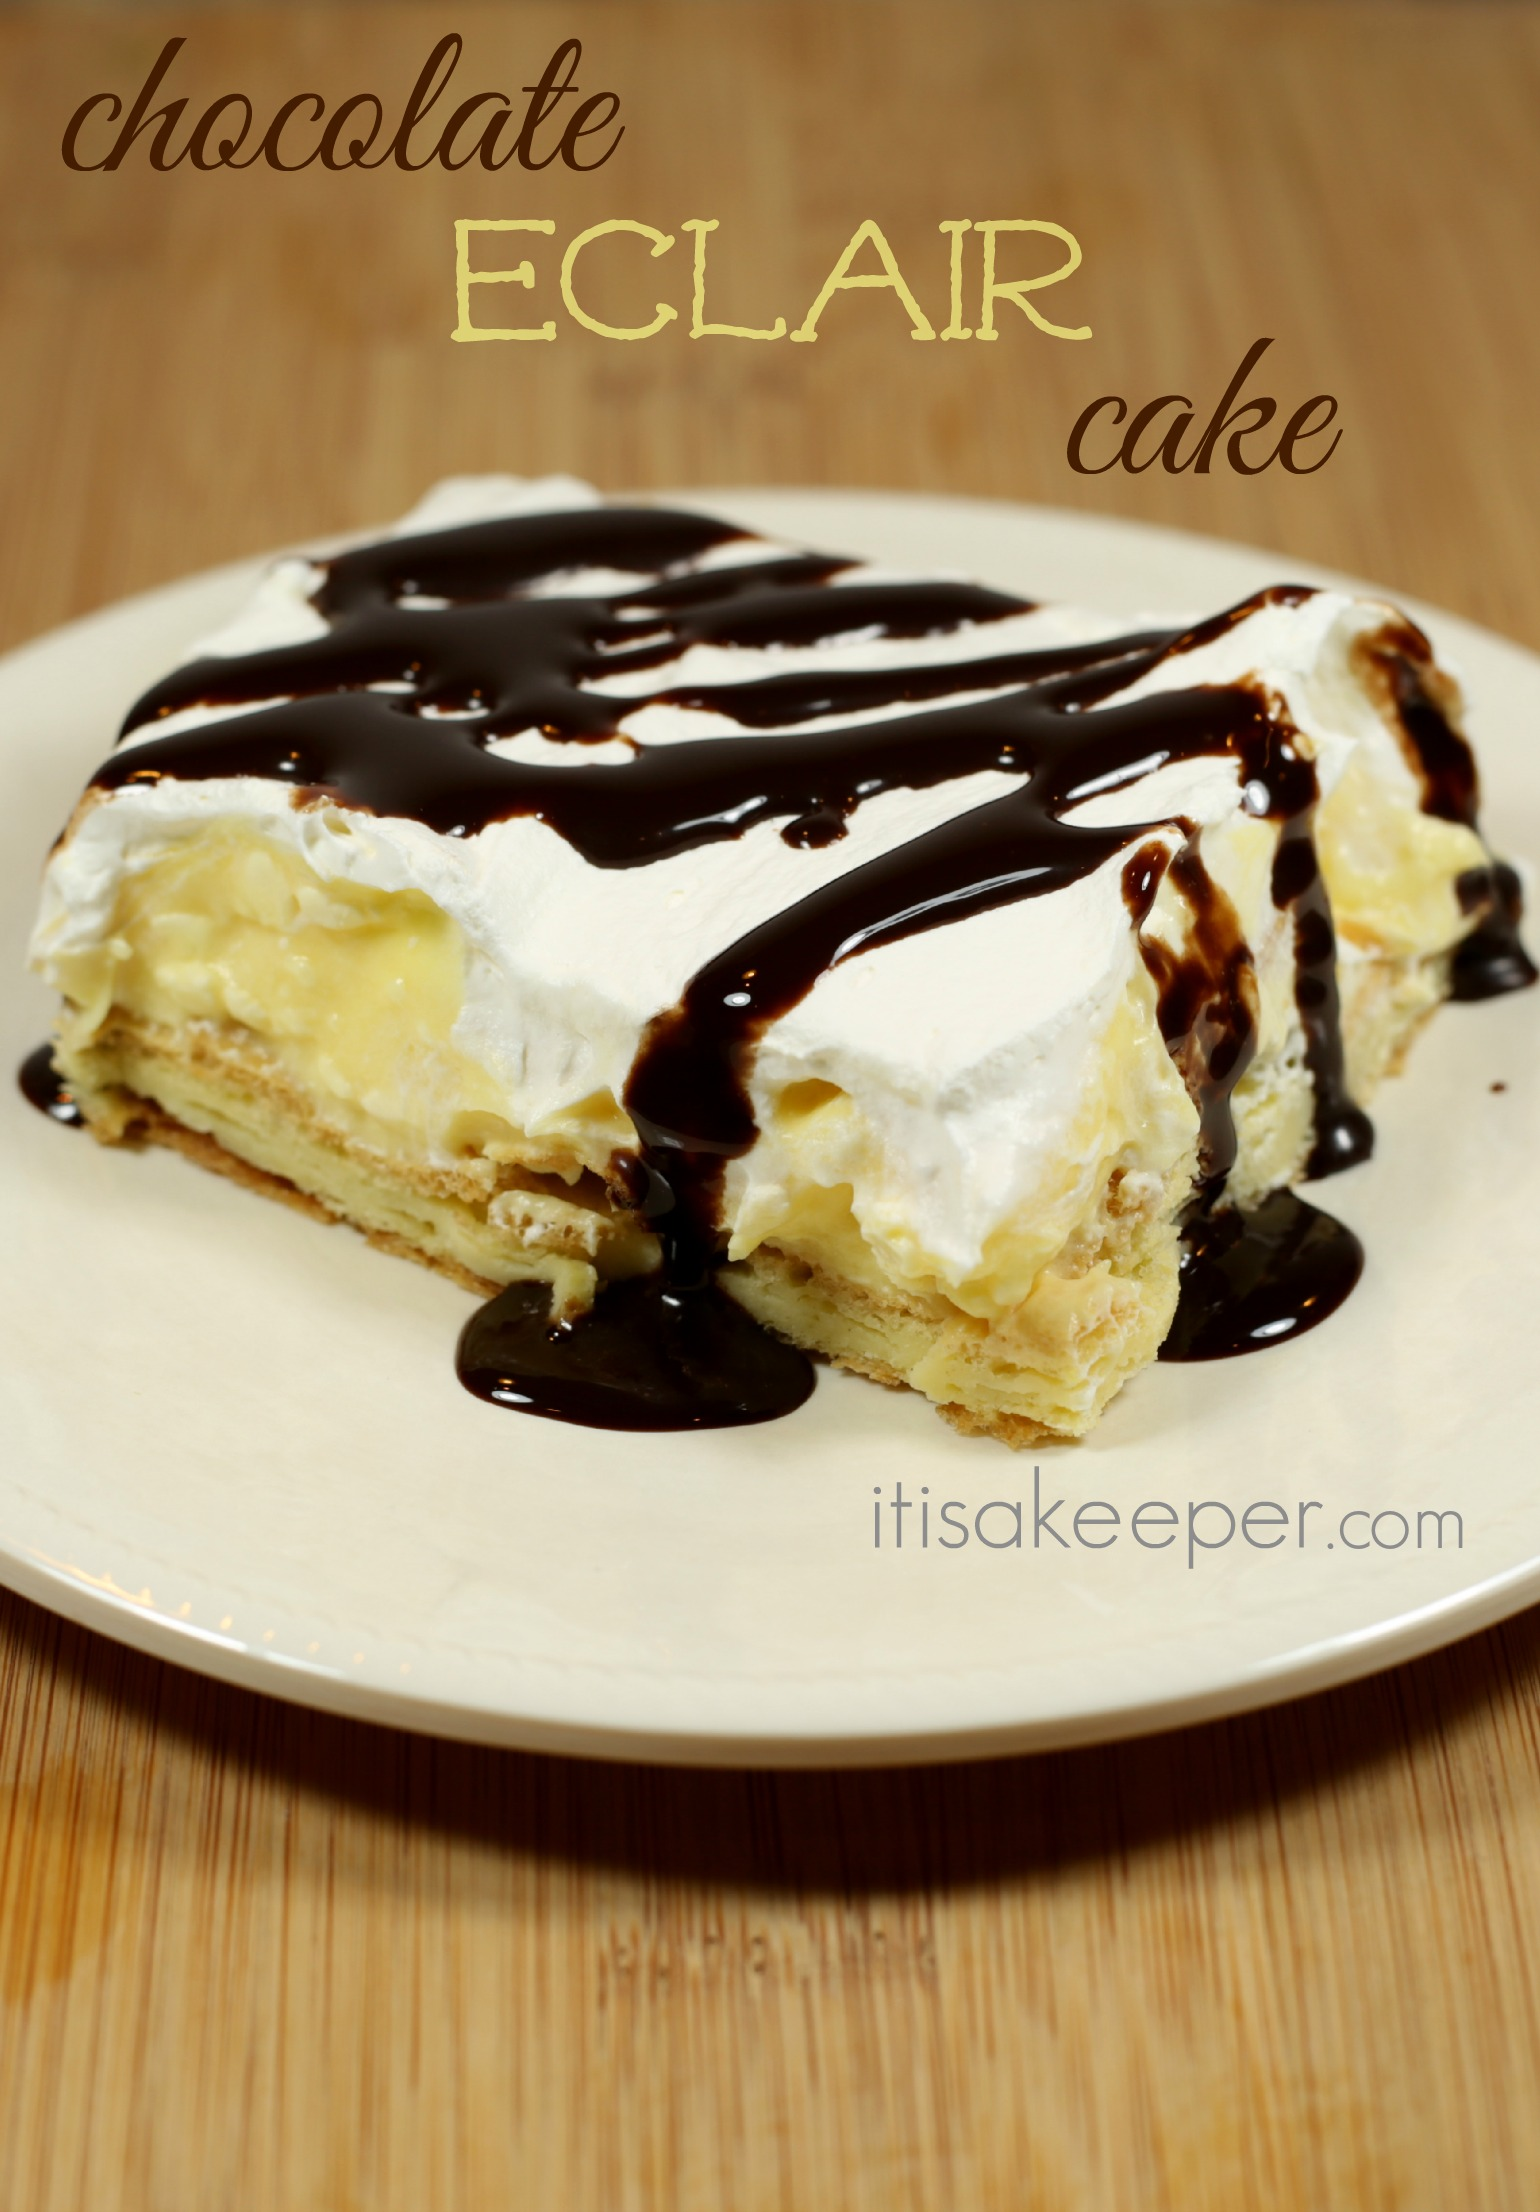 ... make, then look no further! This Chocolate Eclair Cake fits the bill